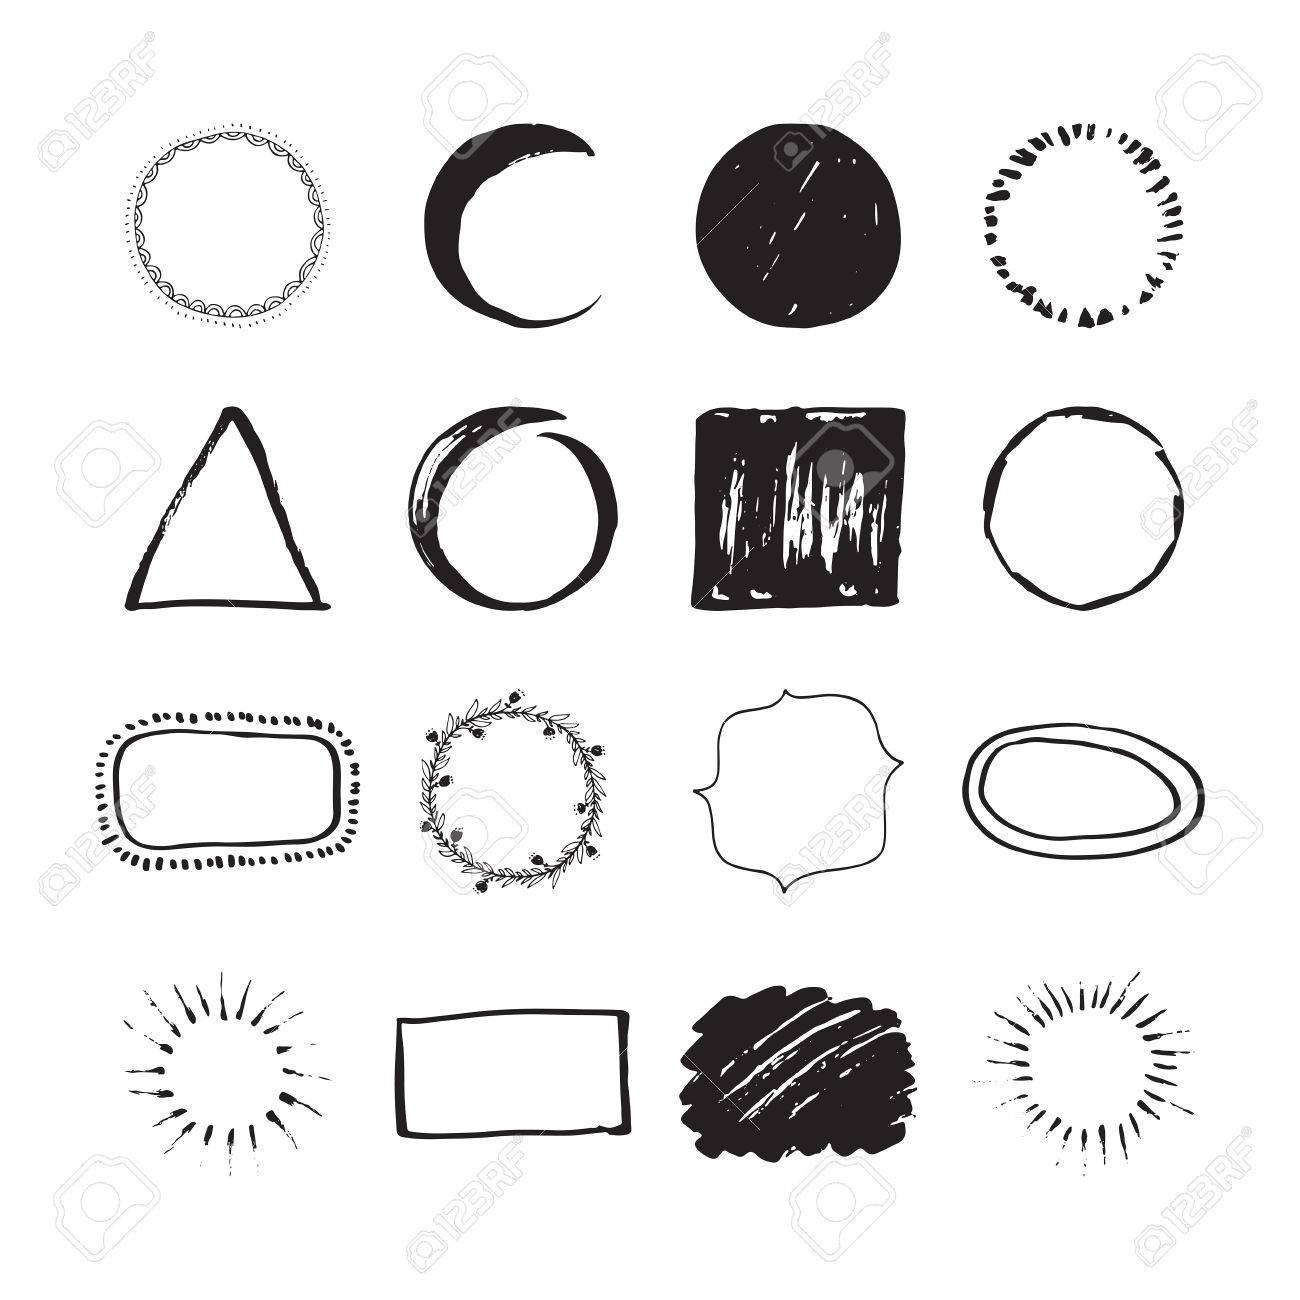 Set of round handdrawn circles and other shapes for logo design